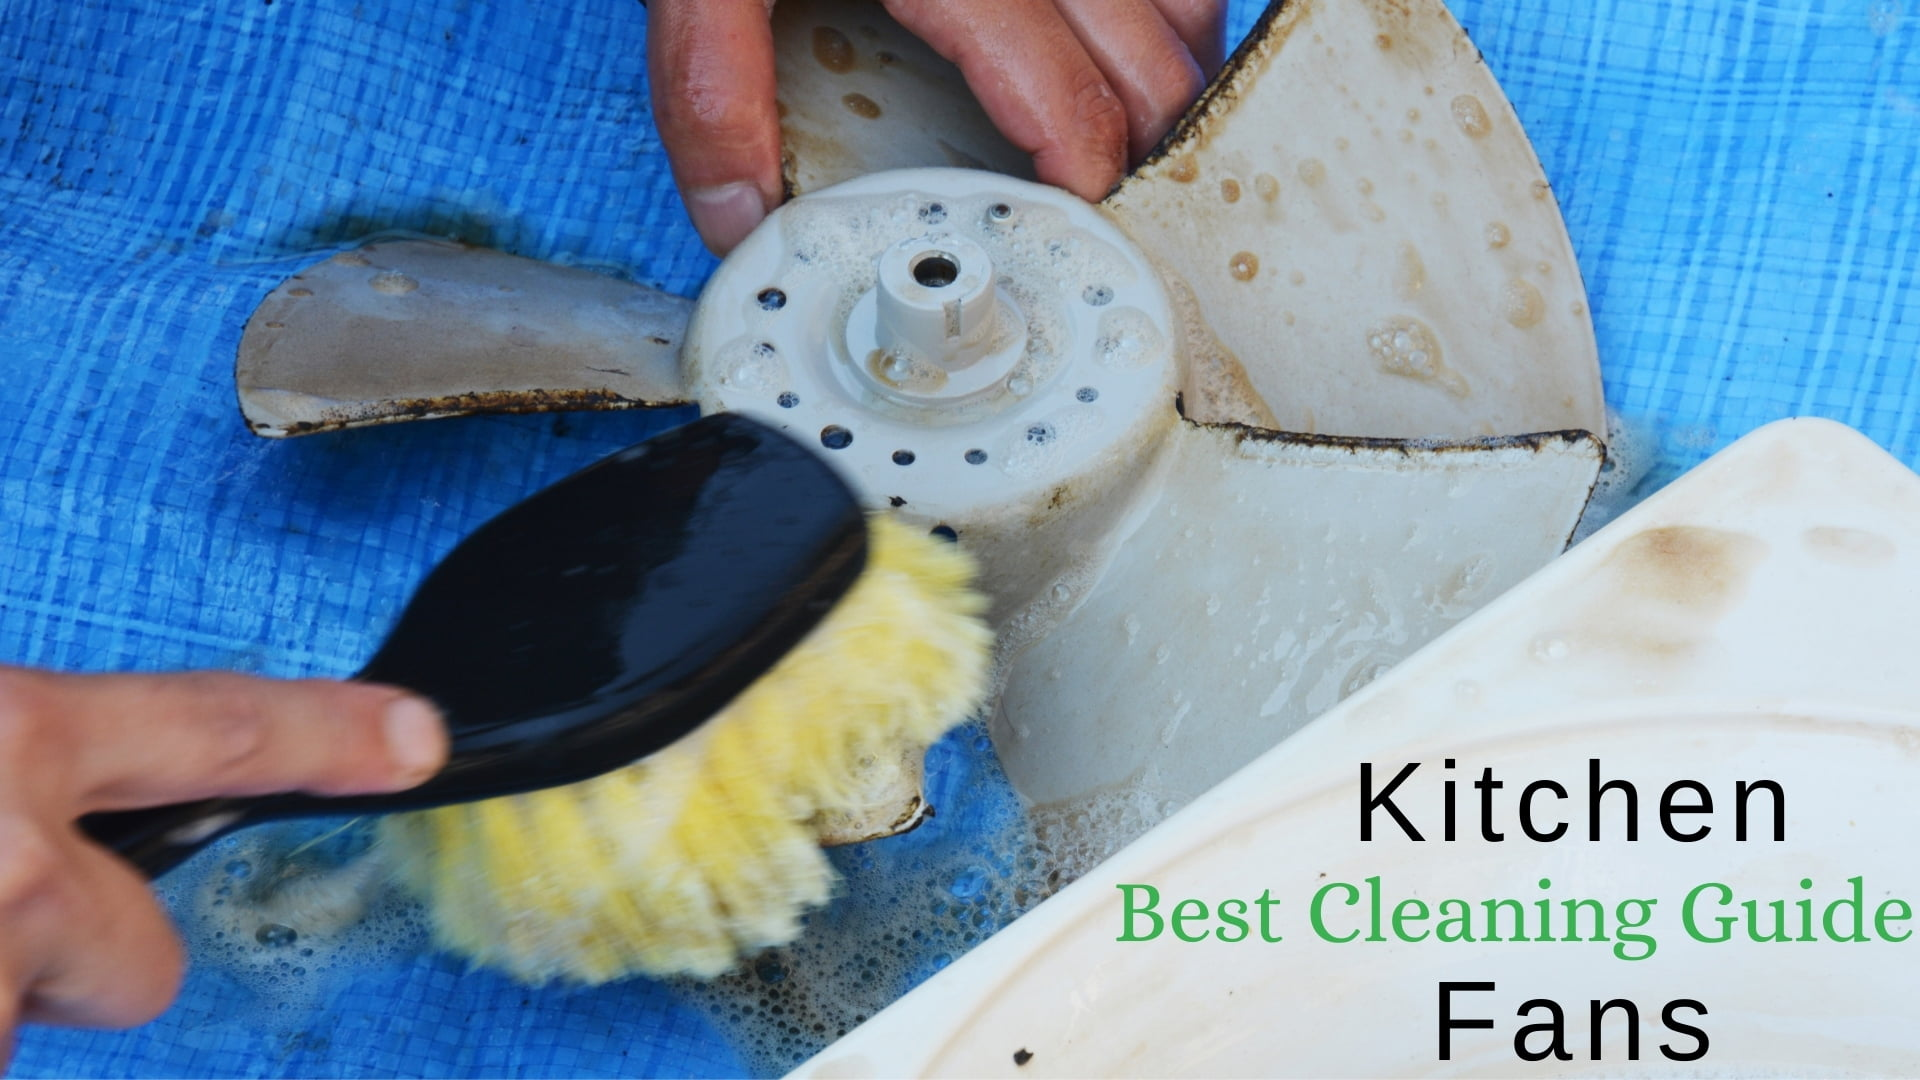 How To Clean Kitchen Fan | Ultimate Guide For Beginner